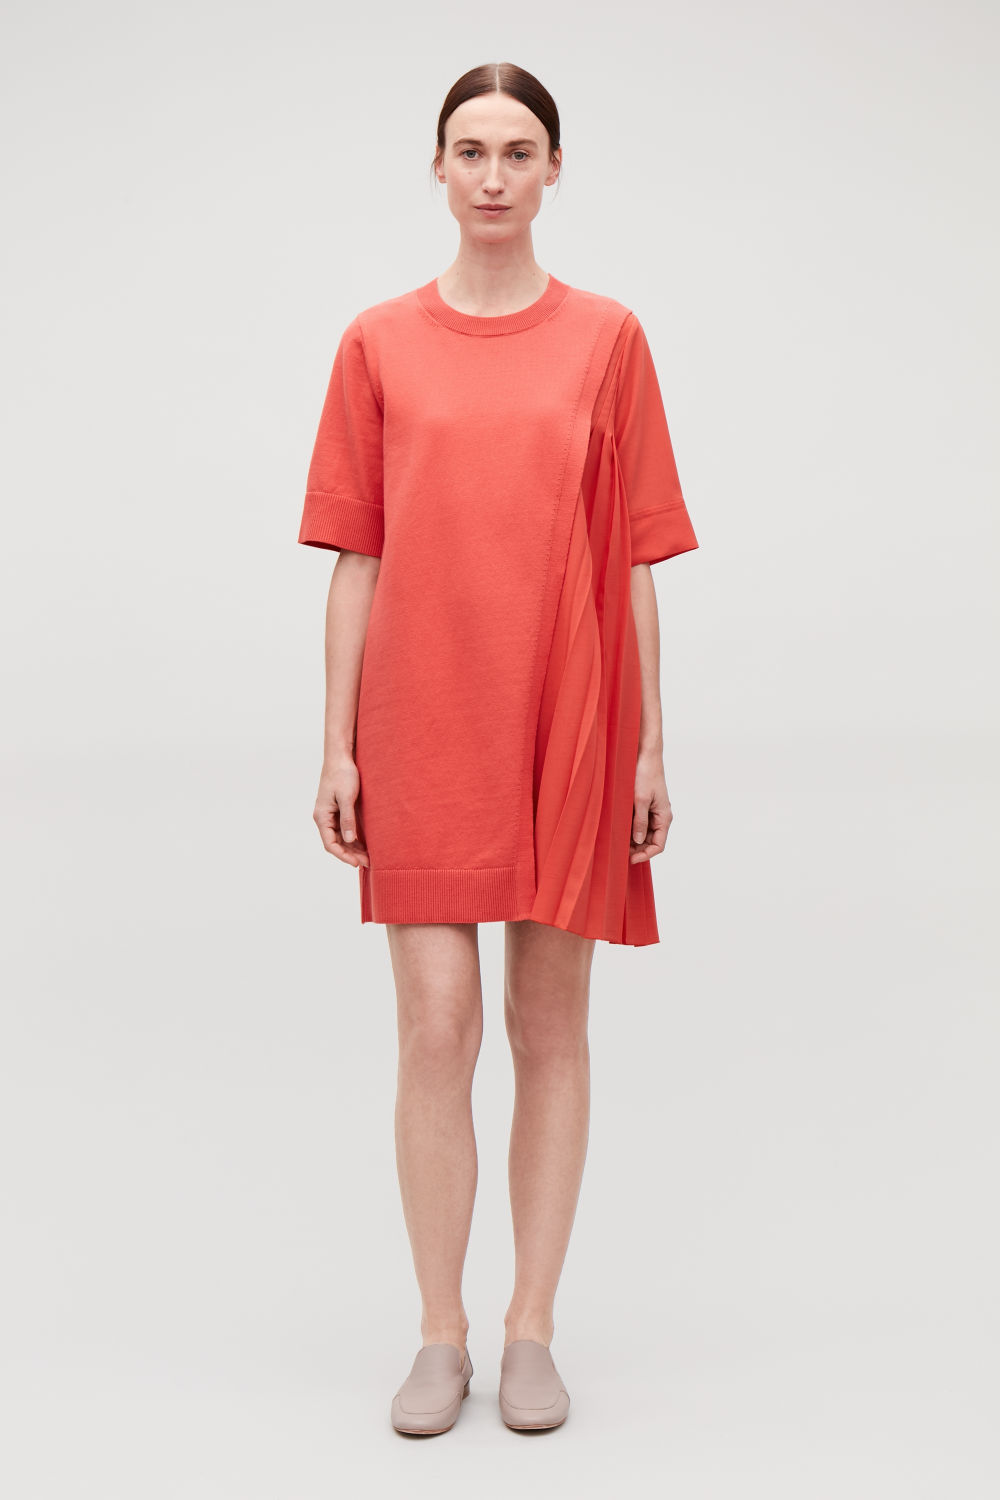 PLEATED-PANELLED KNIT DRESS